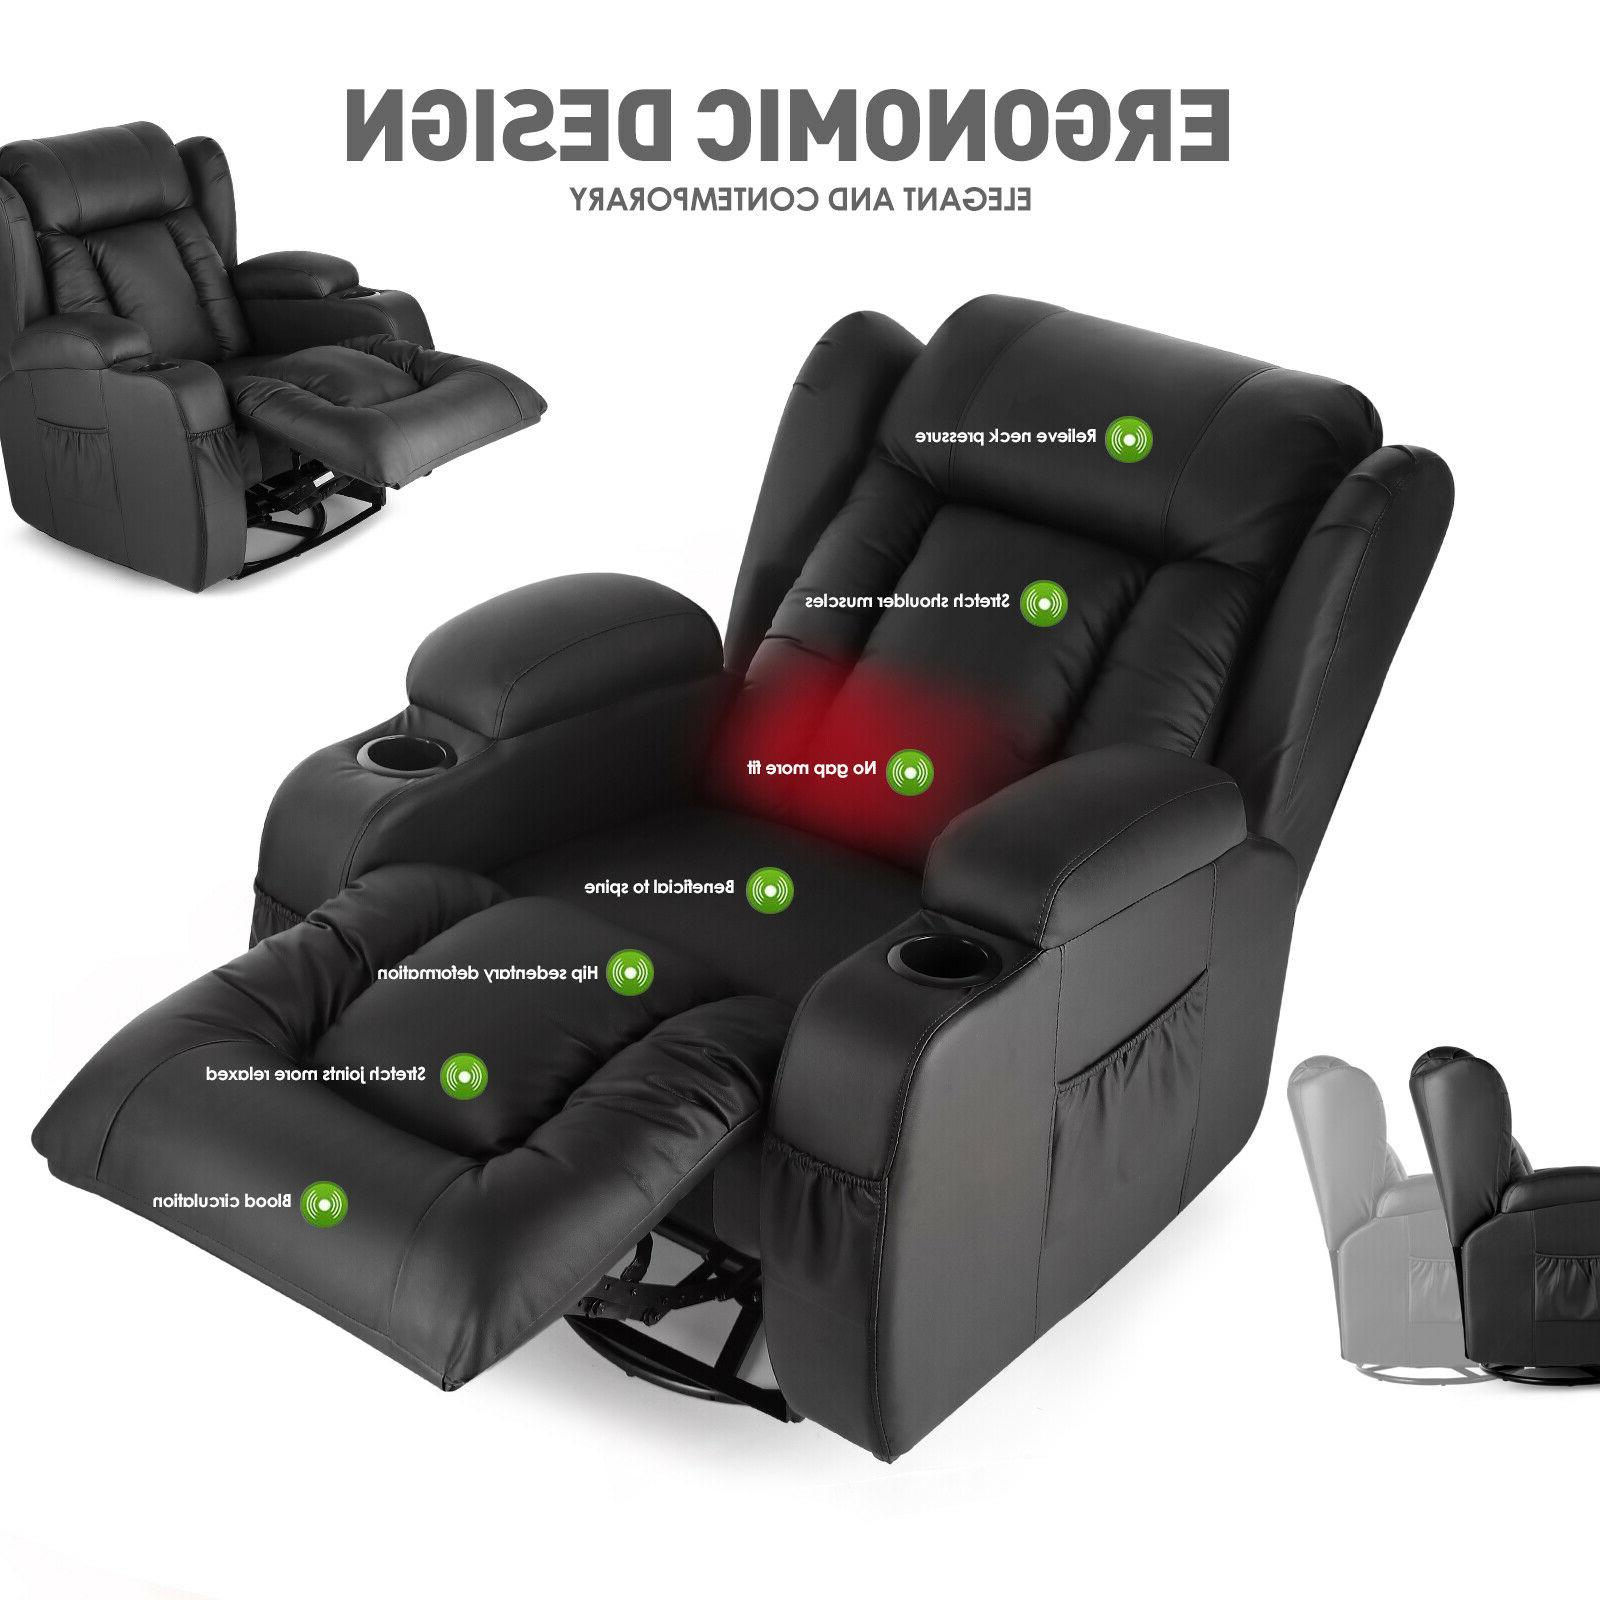 Oversize Leather Recliner 360°Heat Rocking w/Control